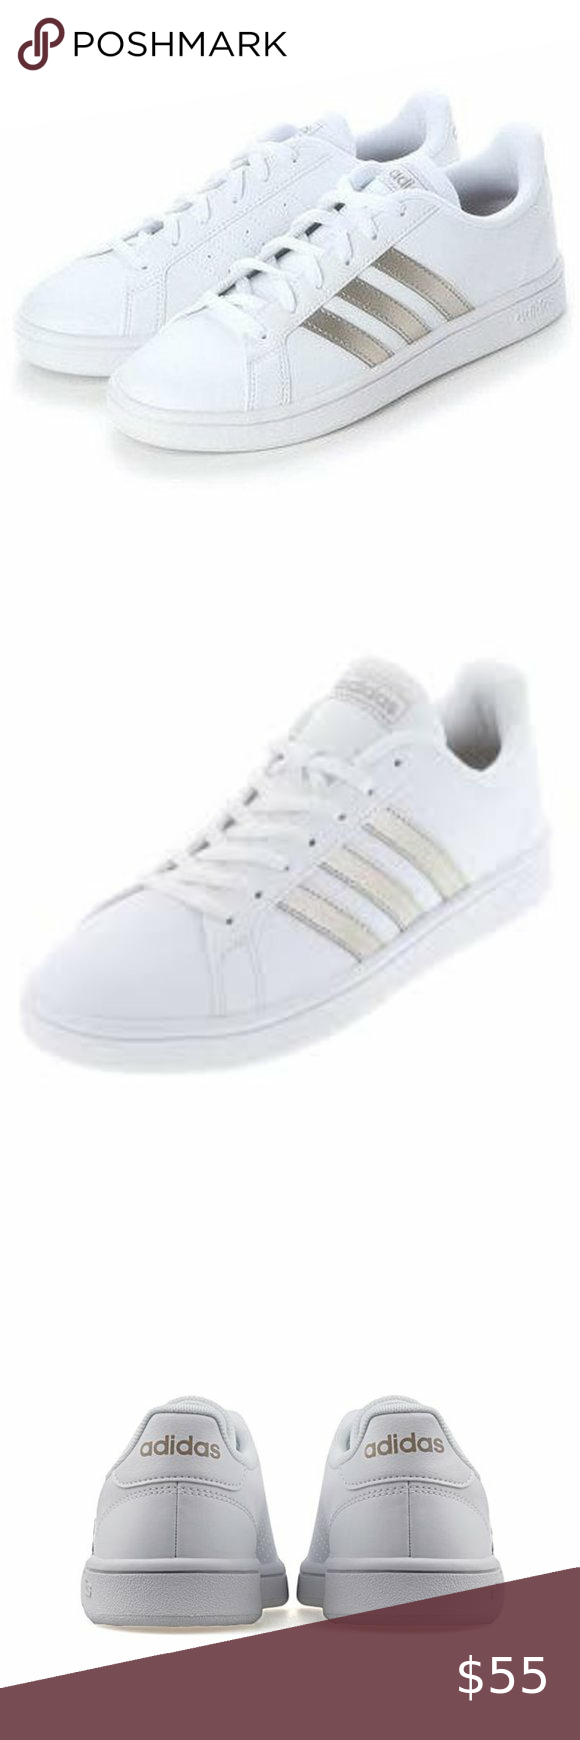 Adidas Grand Court Base White Tennis Shoes Nwob In 2020 White Tennis Shoes Tennis Shoes Womens Tennis Shoes